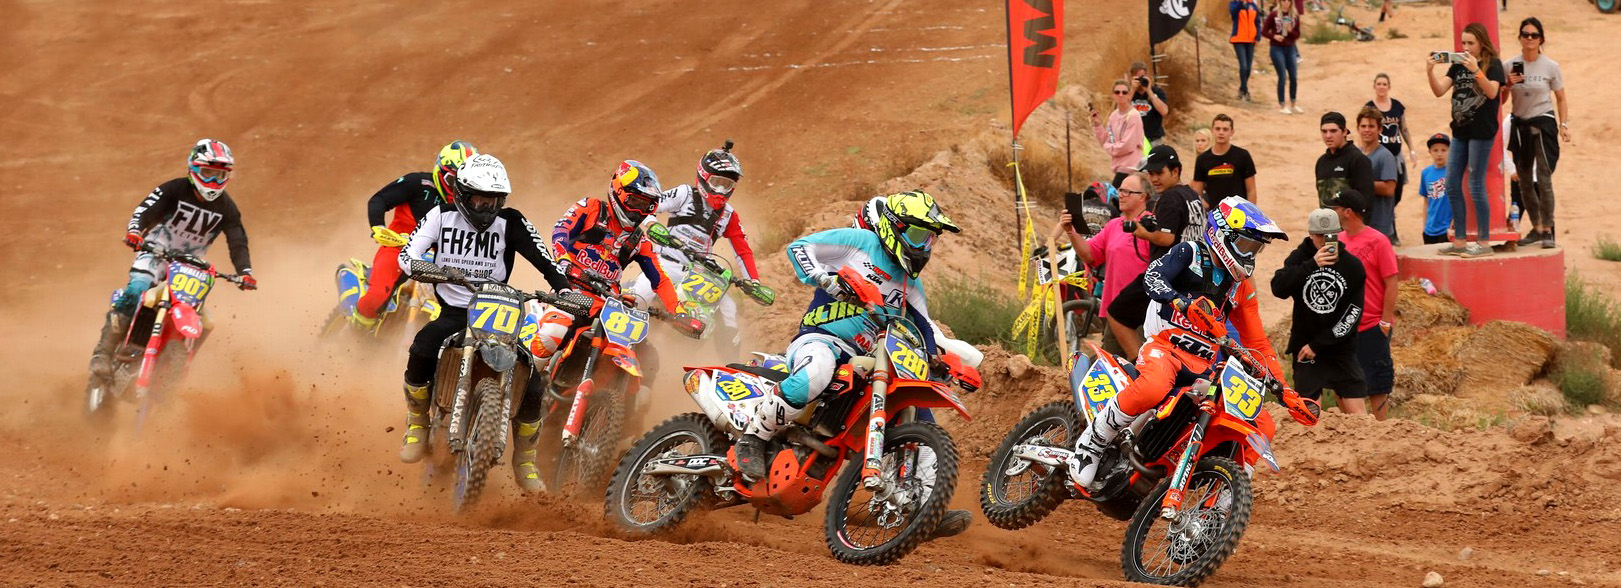 2018-08-taylor-robert-holeshot-bike-worcs-racing